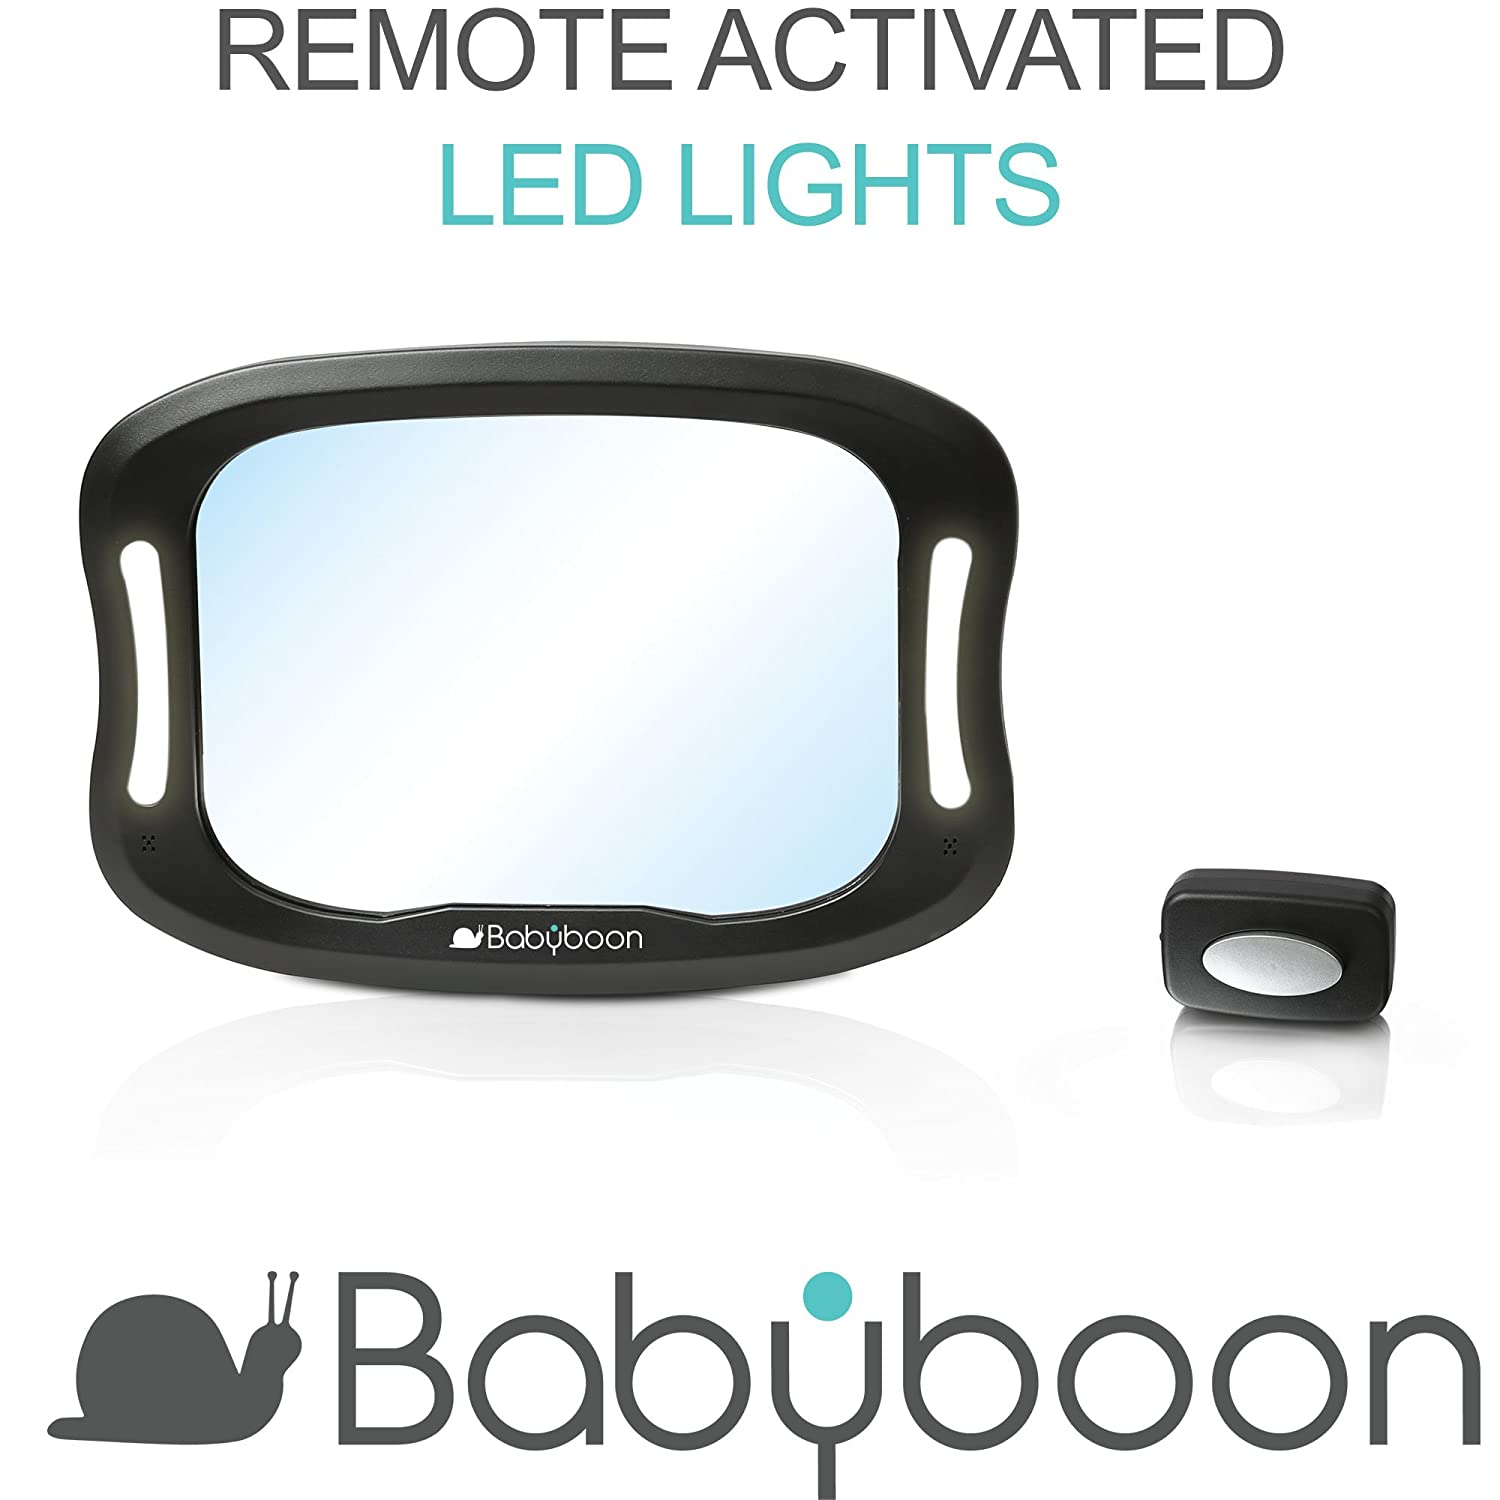 View Child in Rear Facing Car Seat with Superior View /& Clarity 360/° Anti-Wobble Fixing Straps Babyboon Premium Mirrors are Carefully Designed for Safety: Shatterproof Baby Car Mirror LED Light